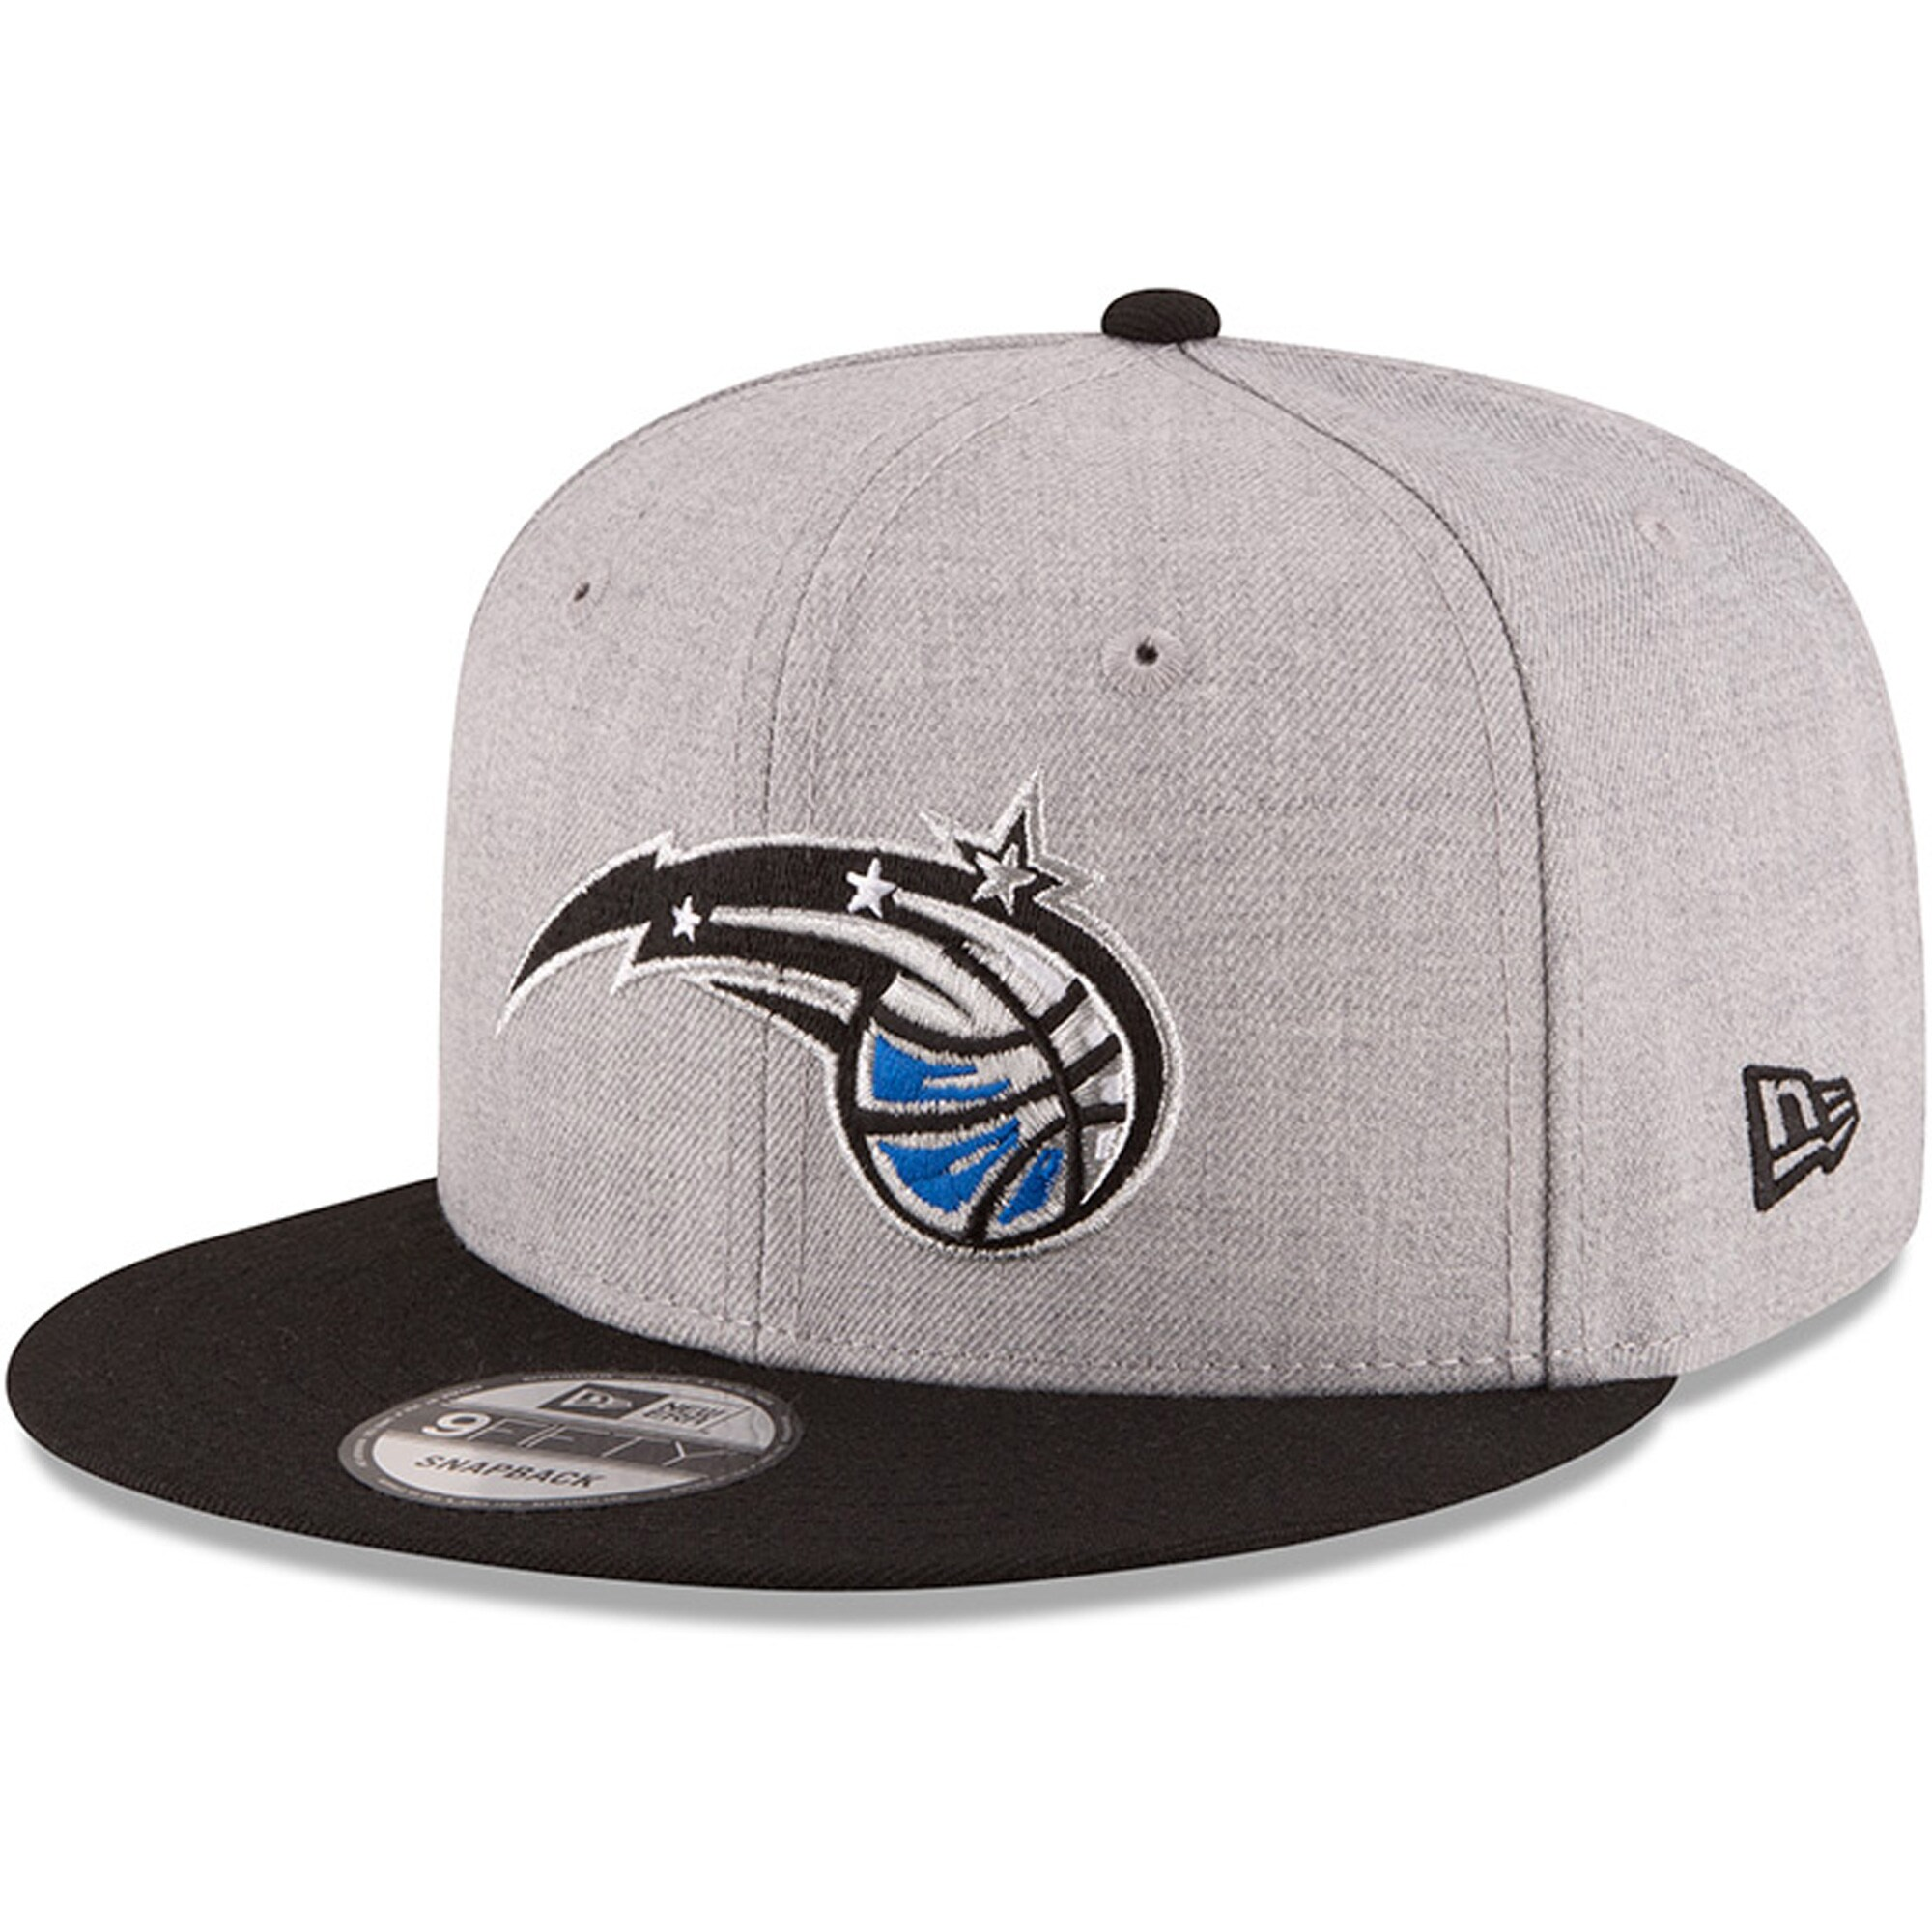 Orlando Magic New Era Two-Tone 9FIFTY Snapback Adjustable Hat - Heathered Gray/Royal